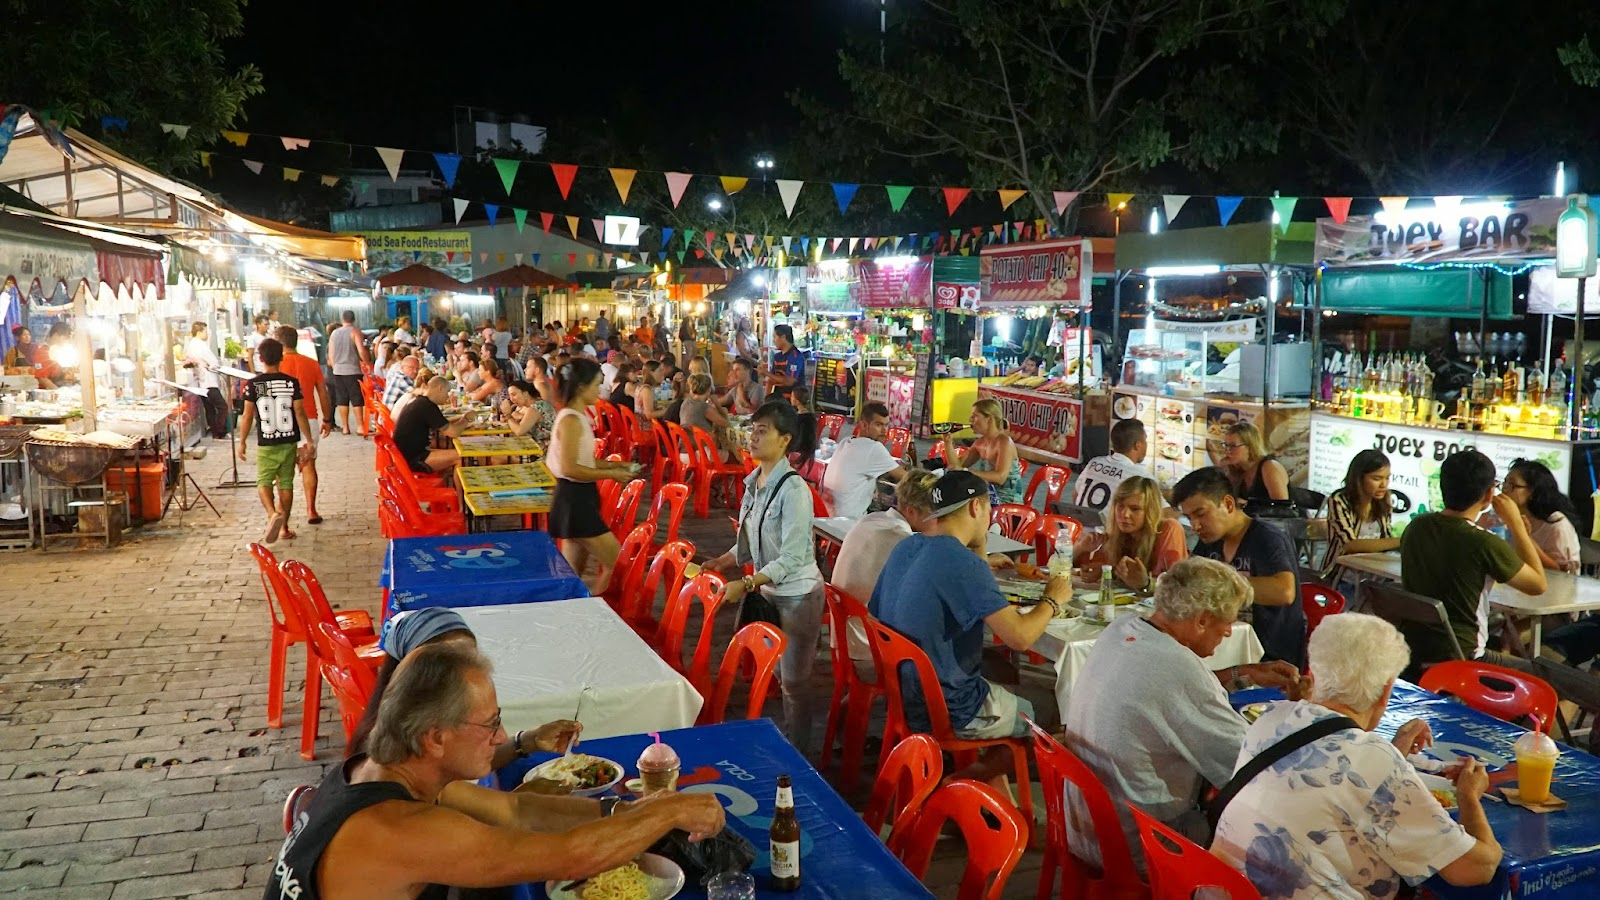 Chaweng Night Market, just across the road from where Chaweng Lake is